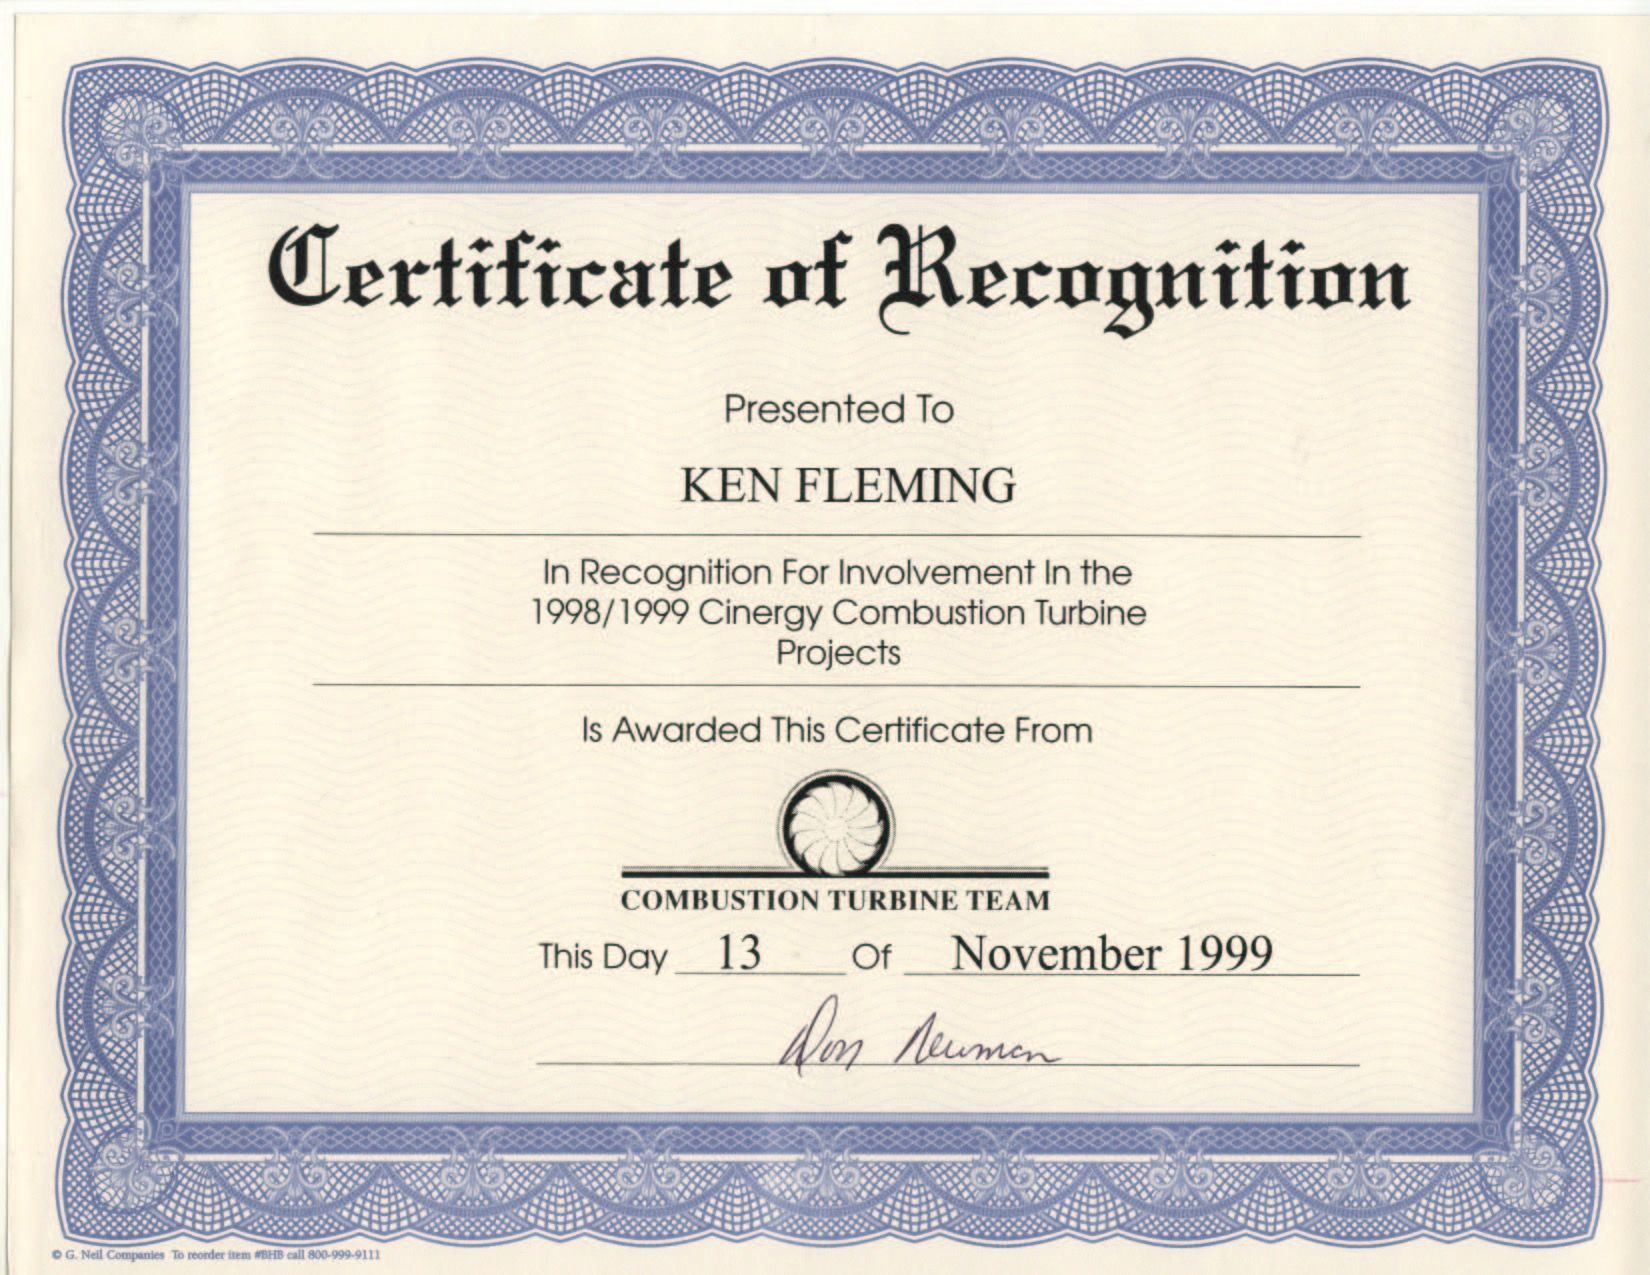 005 Fearsome Certificate Of Recognition Template Word Image  Award Microsoft FreeFull